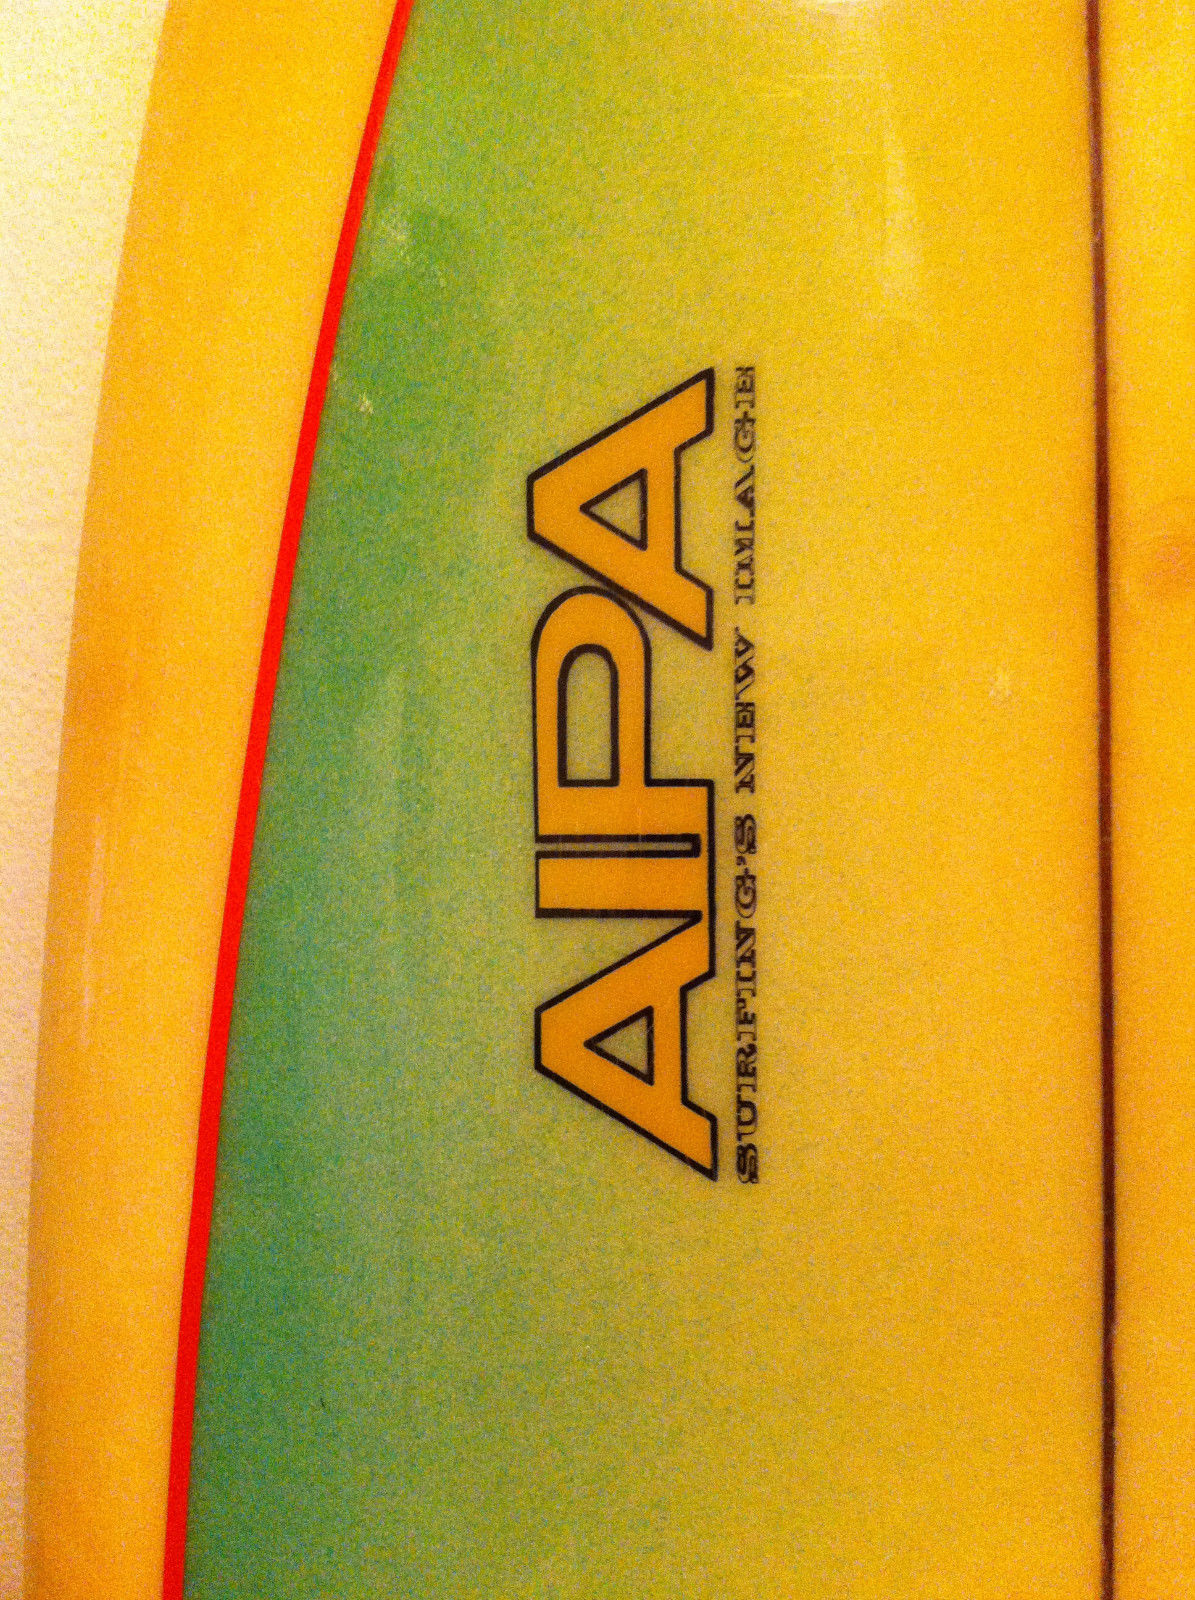 Surfing's New Image Aipa Sting by Rick Hamon2